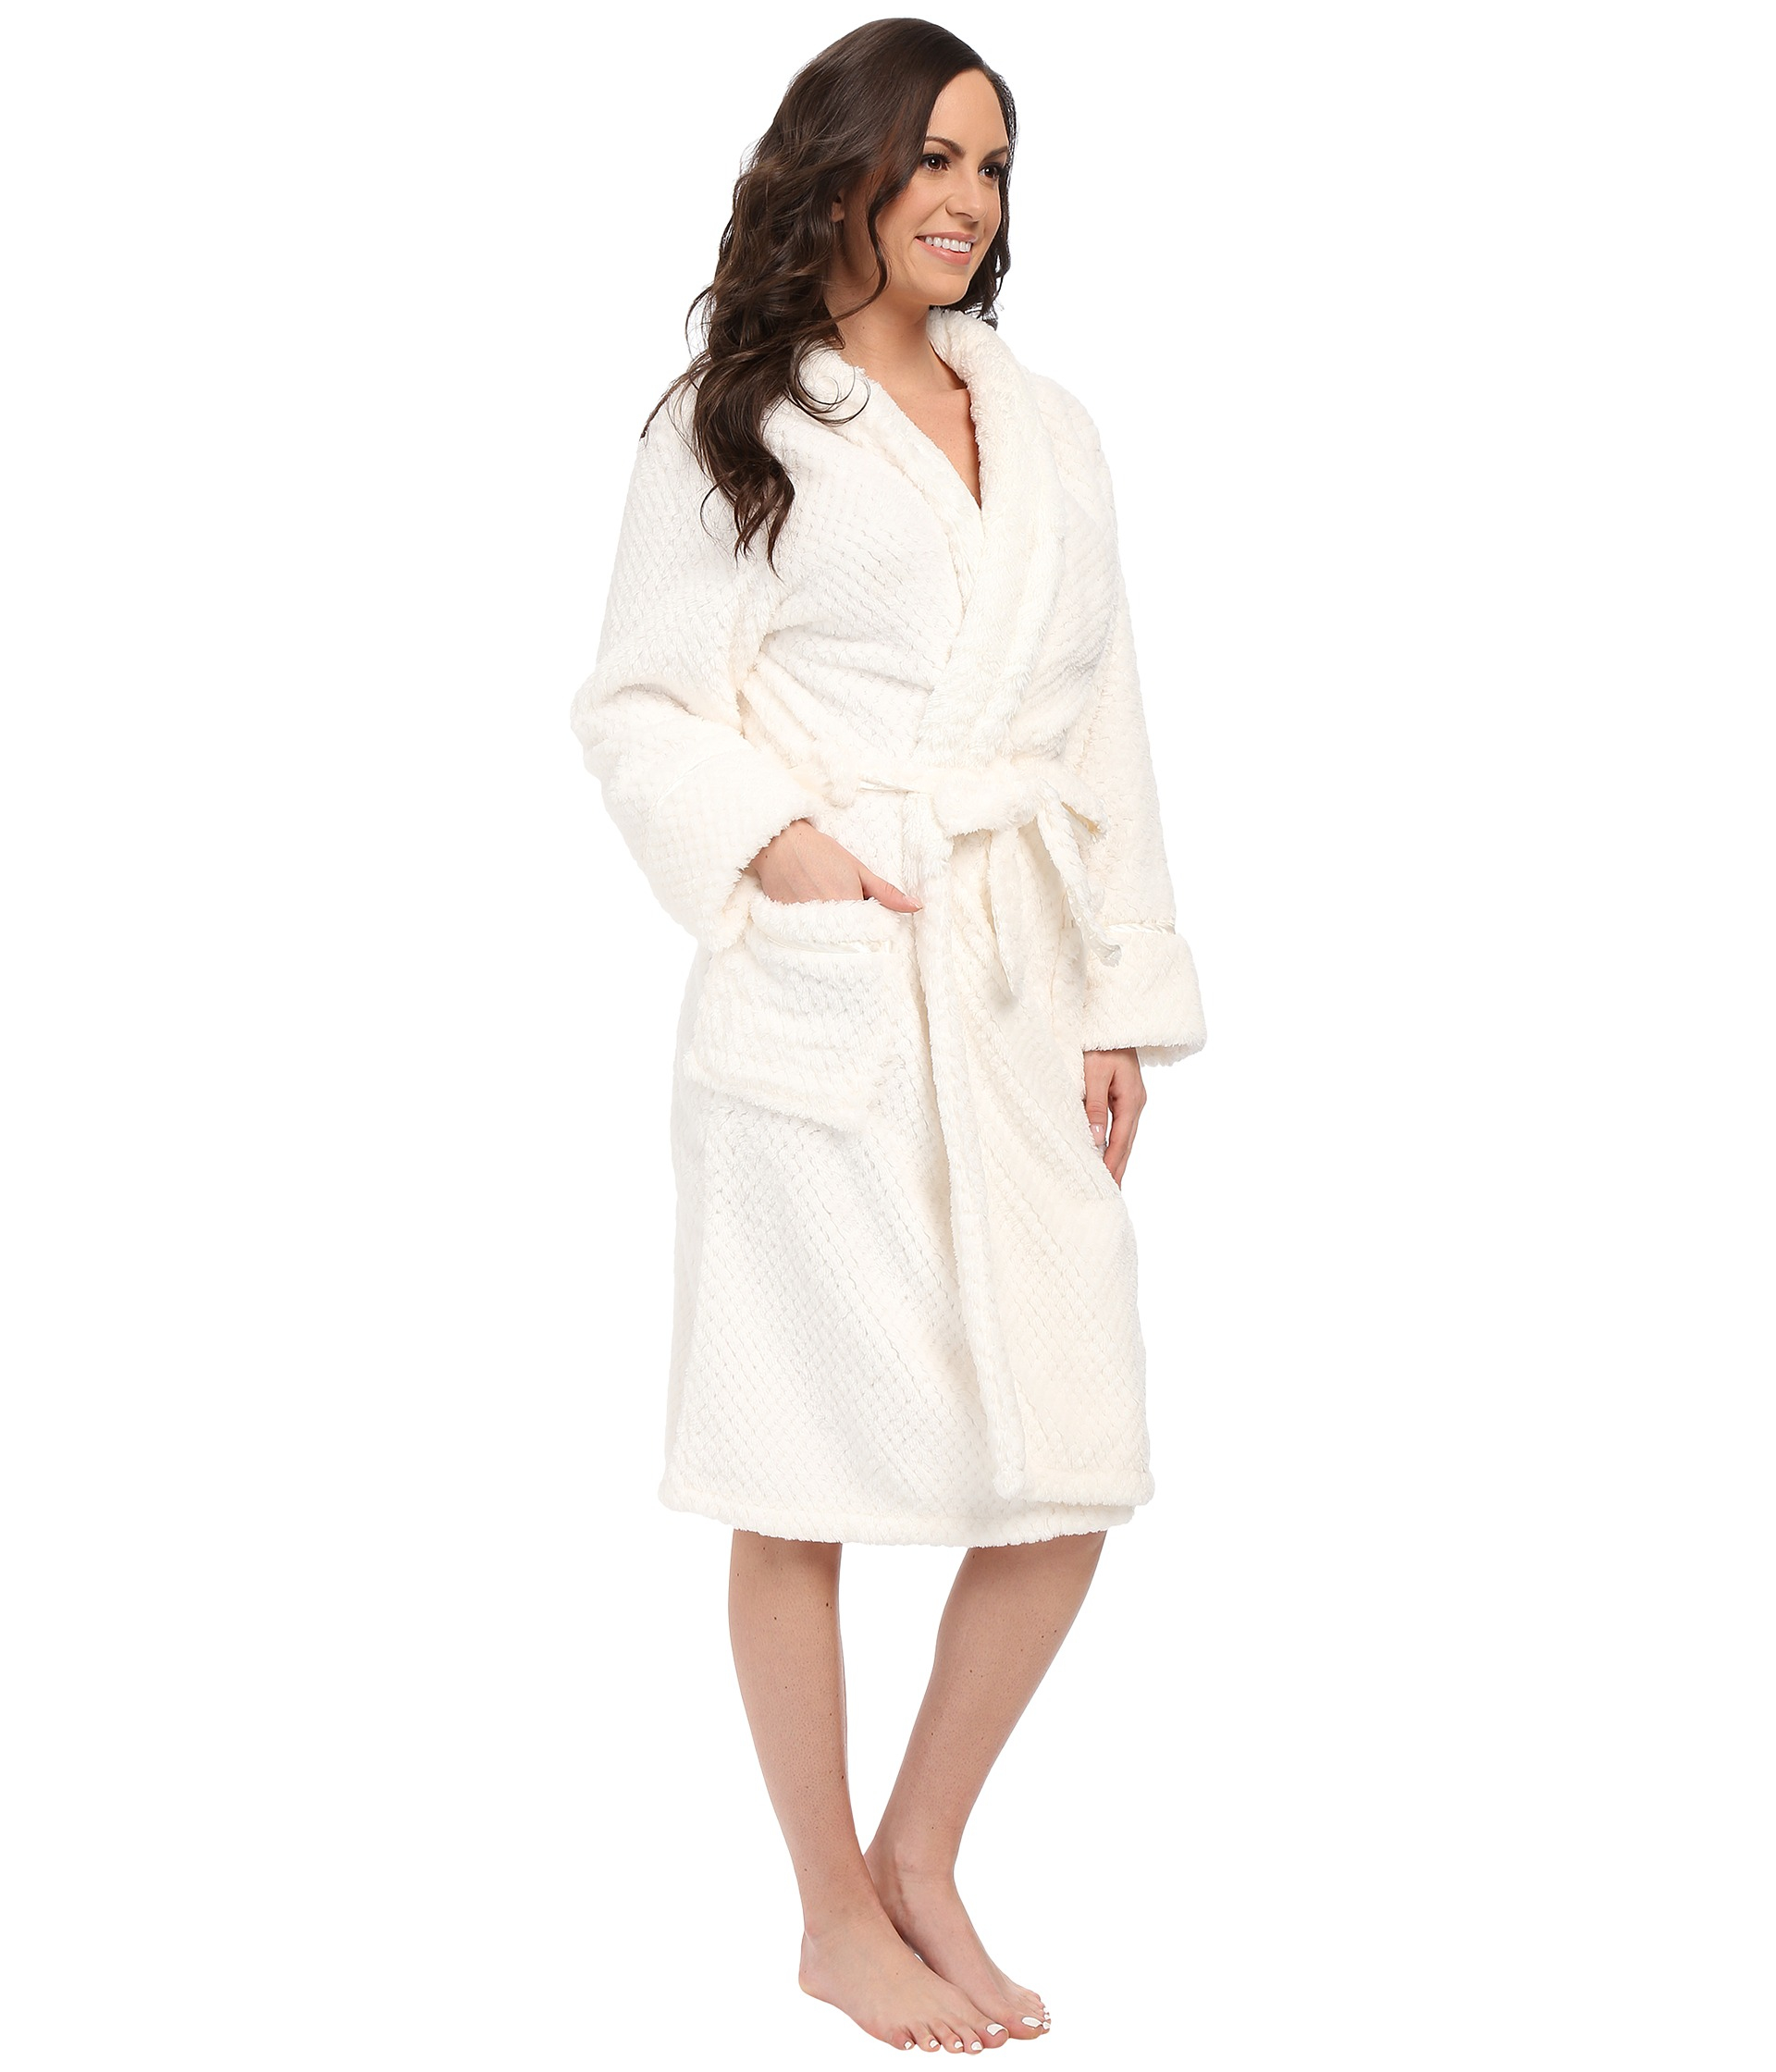 b5a5221612e18 Pj Salvage Waffle Robe in White - Lyst